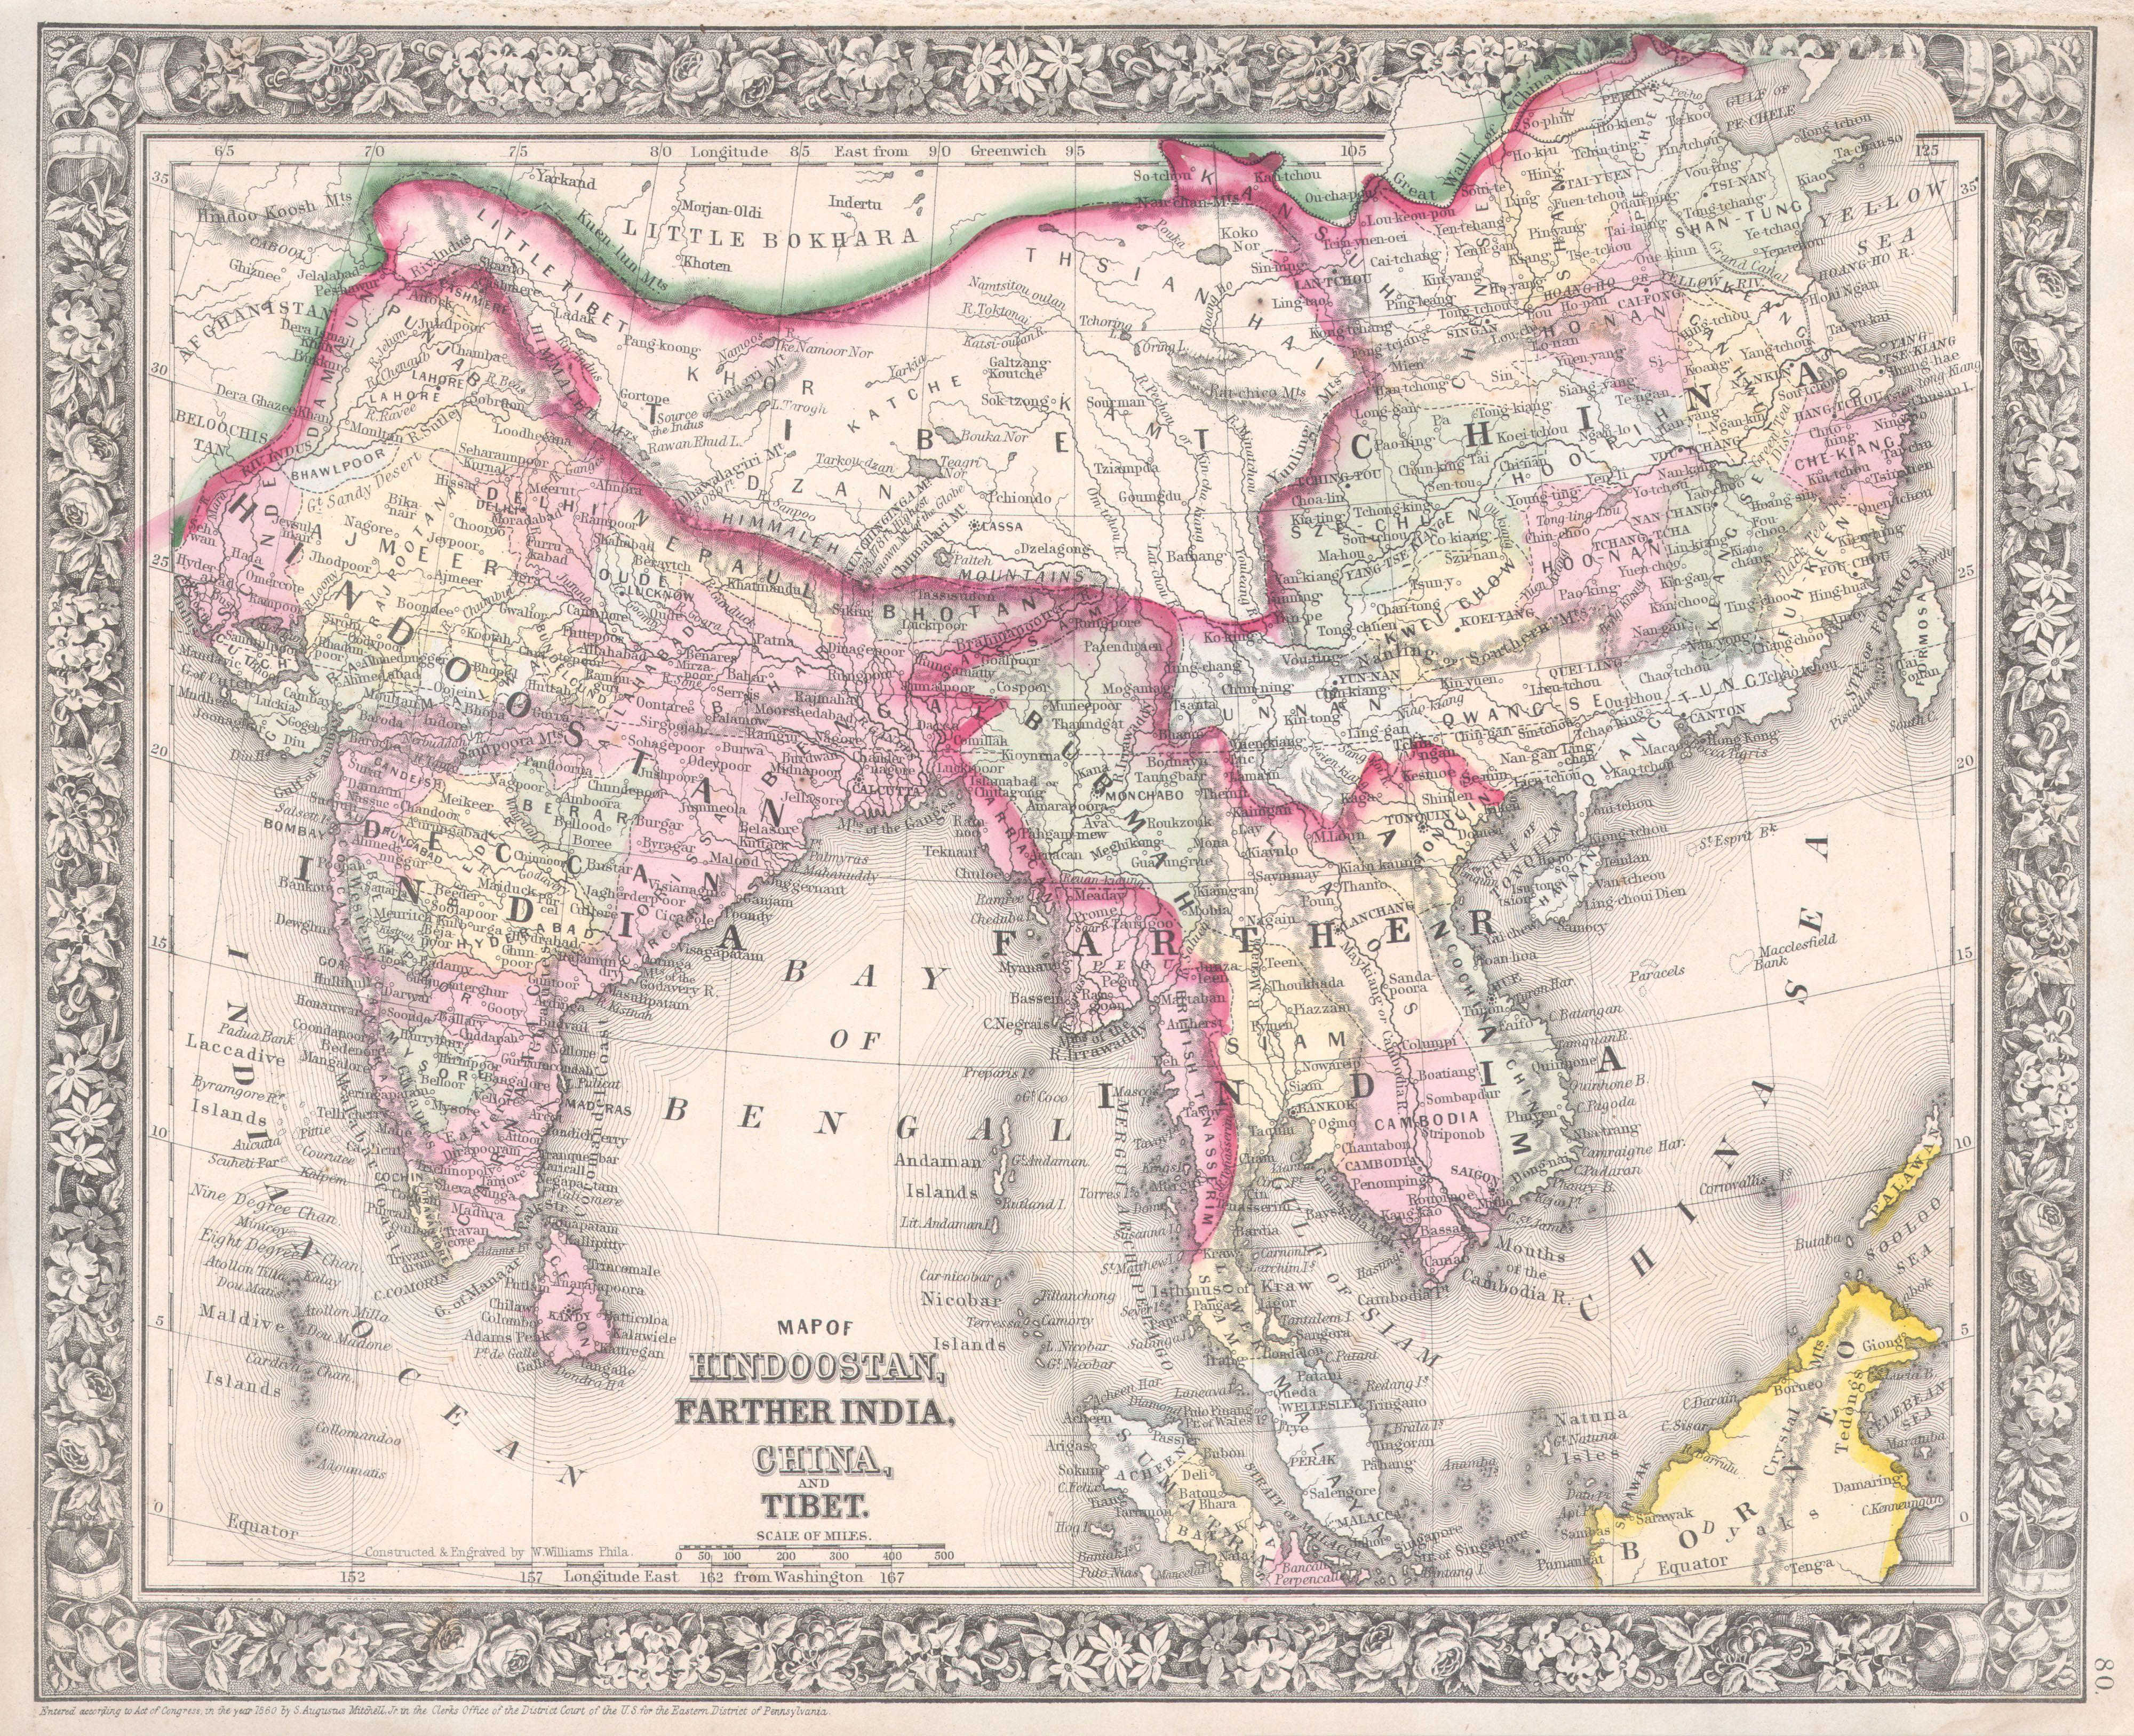 http://upload.wikimedia.org/wikipedia/commons/c/c3/1864_Mitchell_Map_of_India,_Tibet,_China_and_Southeast_Asia_-_Geographicus_-_India-mitchell-1864.jpg